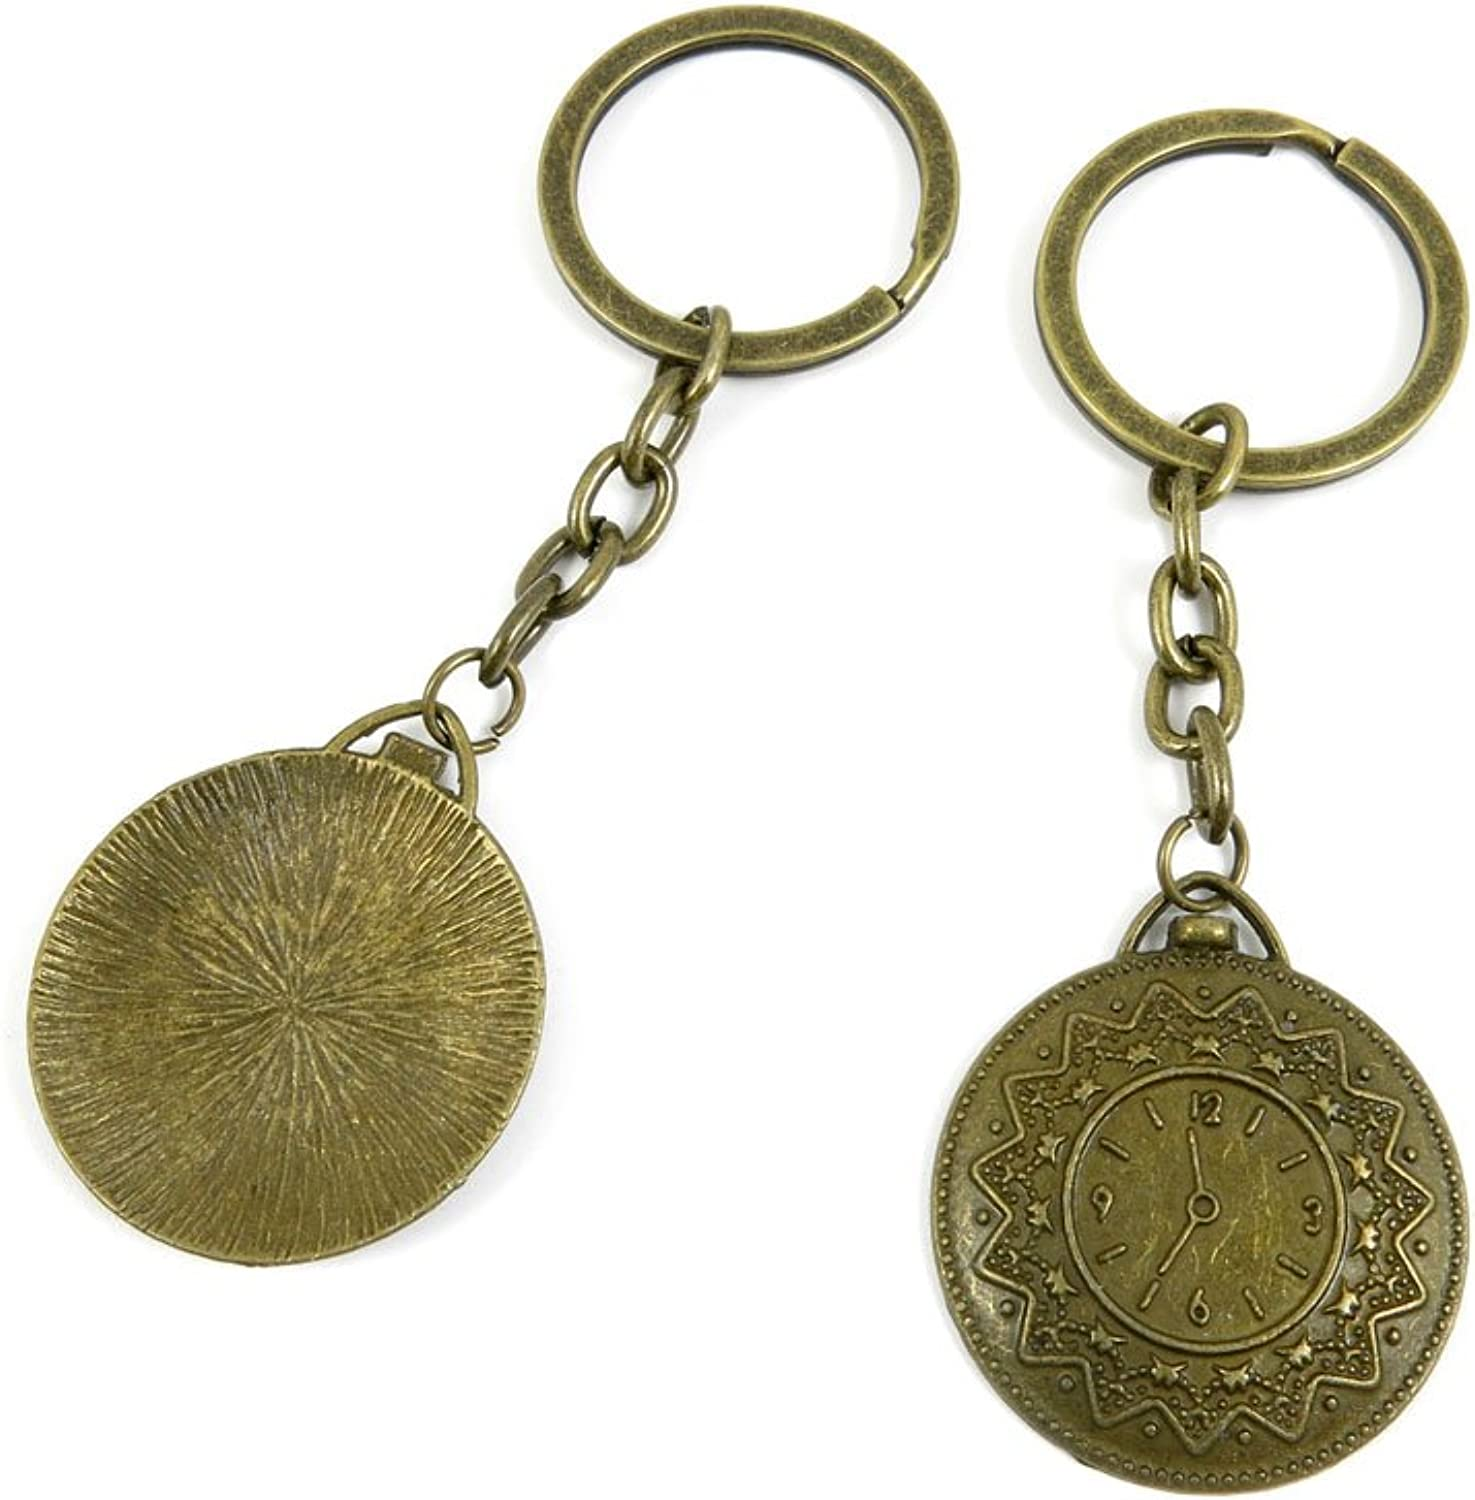 100 PCS Keyrings Keychains Key Ring Chains Tags Jewelry Findings Clasps Buckles Supplies N2OJ5 Pocket Watch Clock